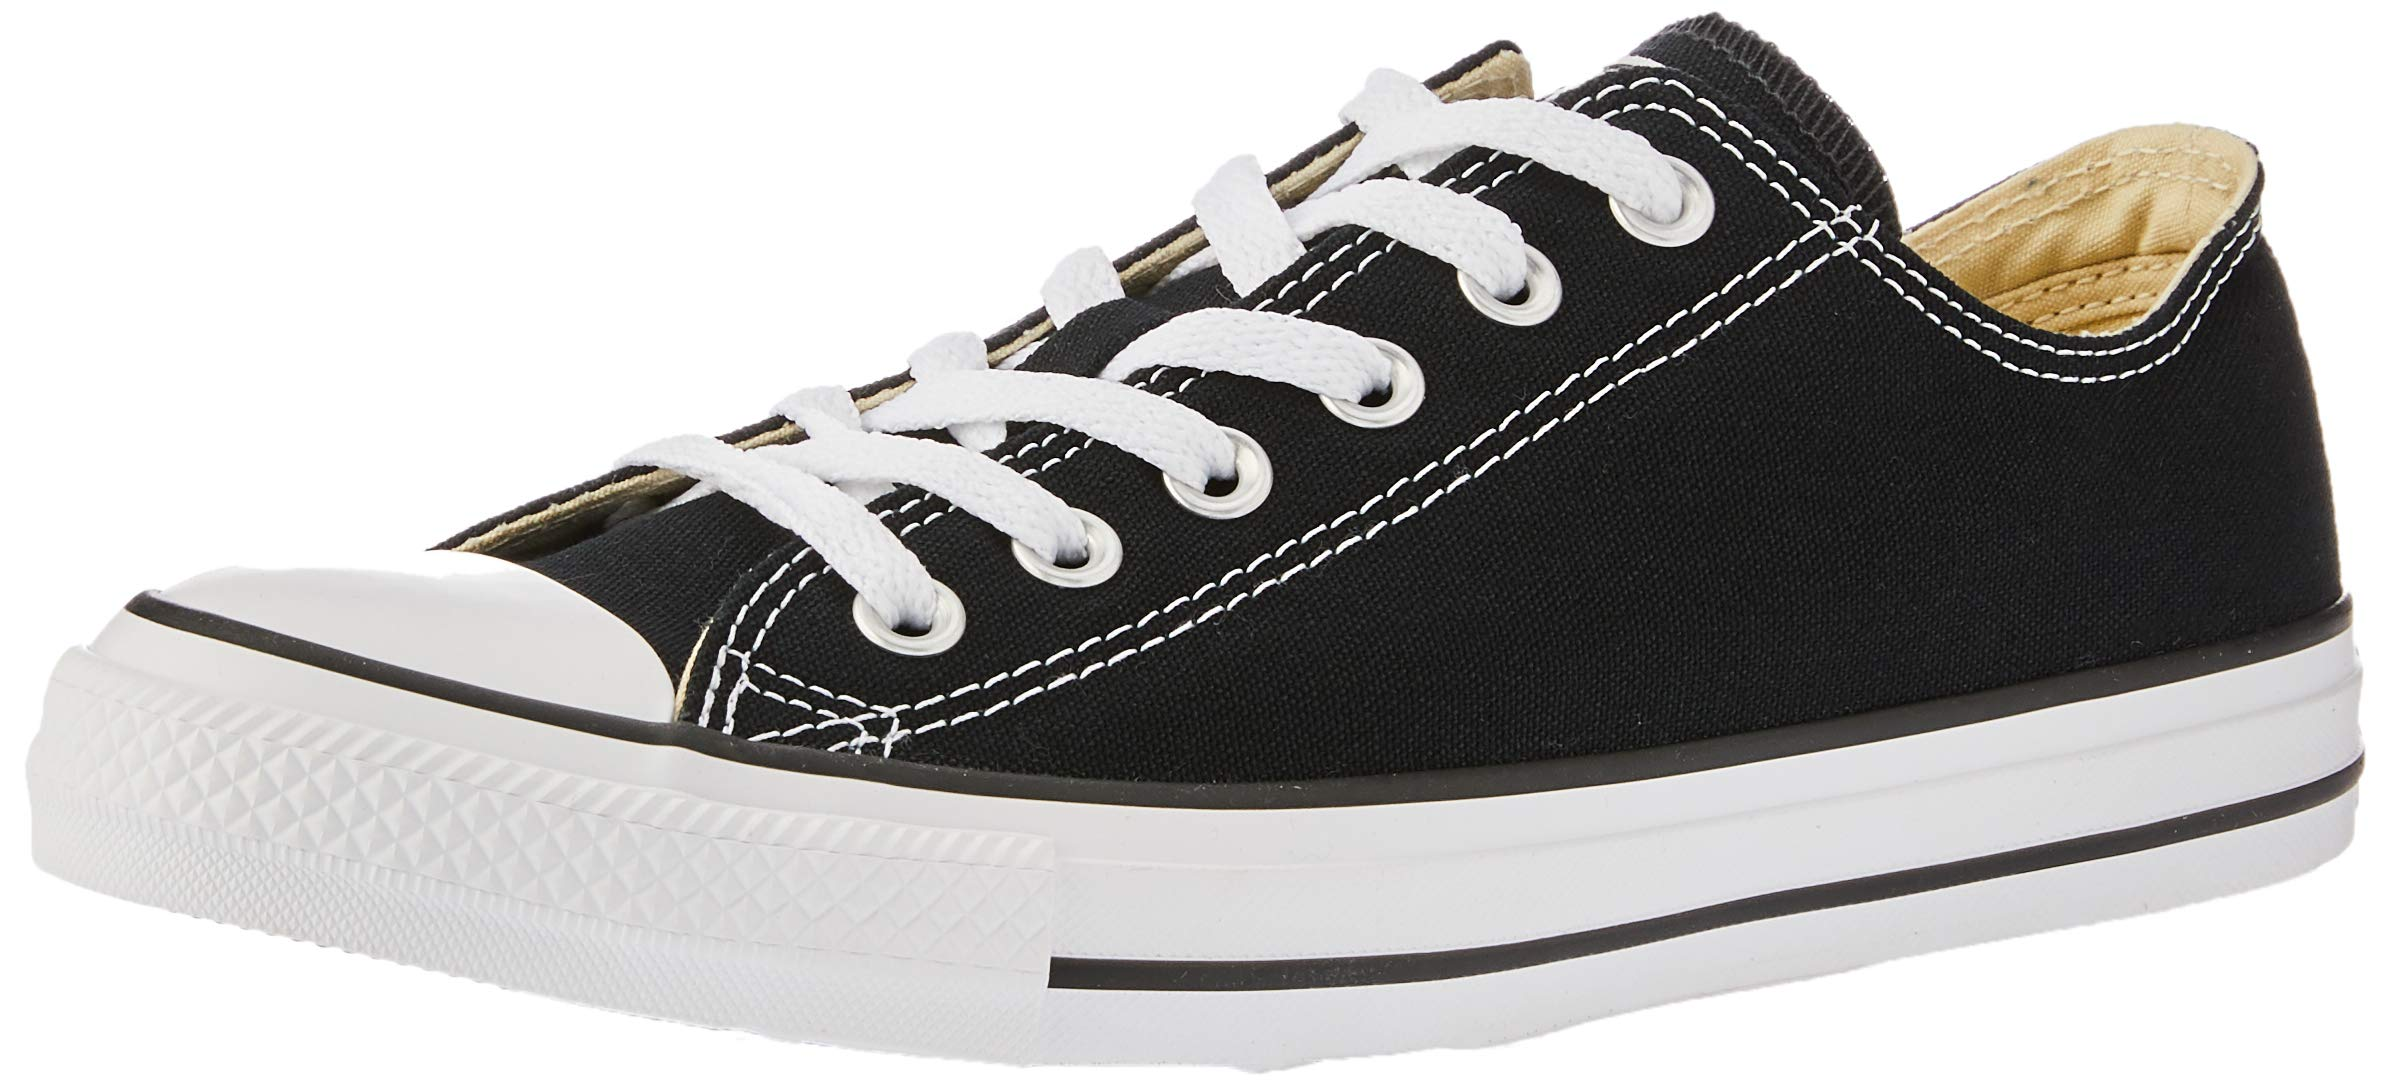 finest selection 382f4 cc516 Converse Chuck Taylor All Star Core Ox product image